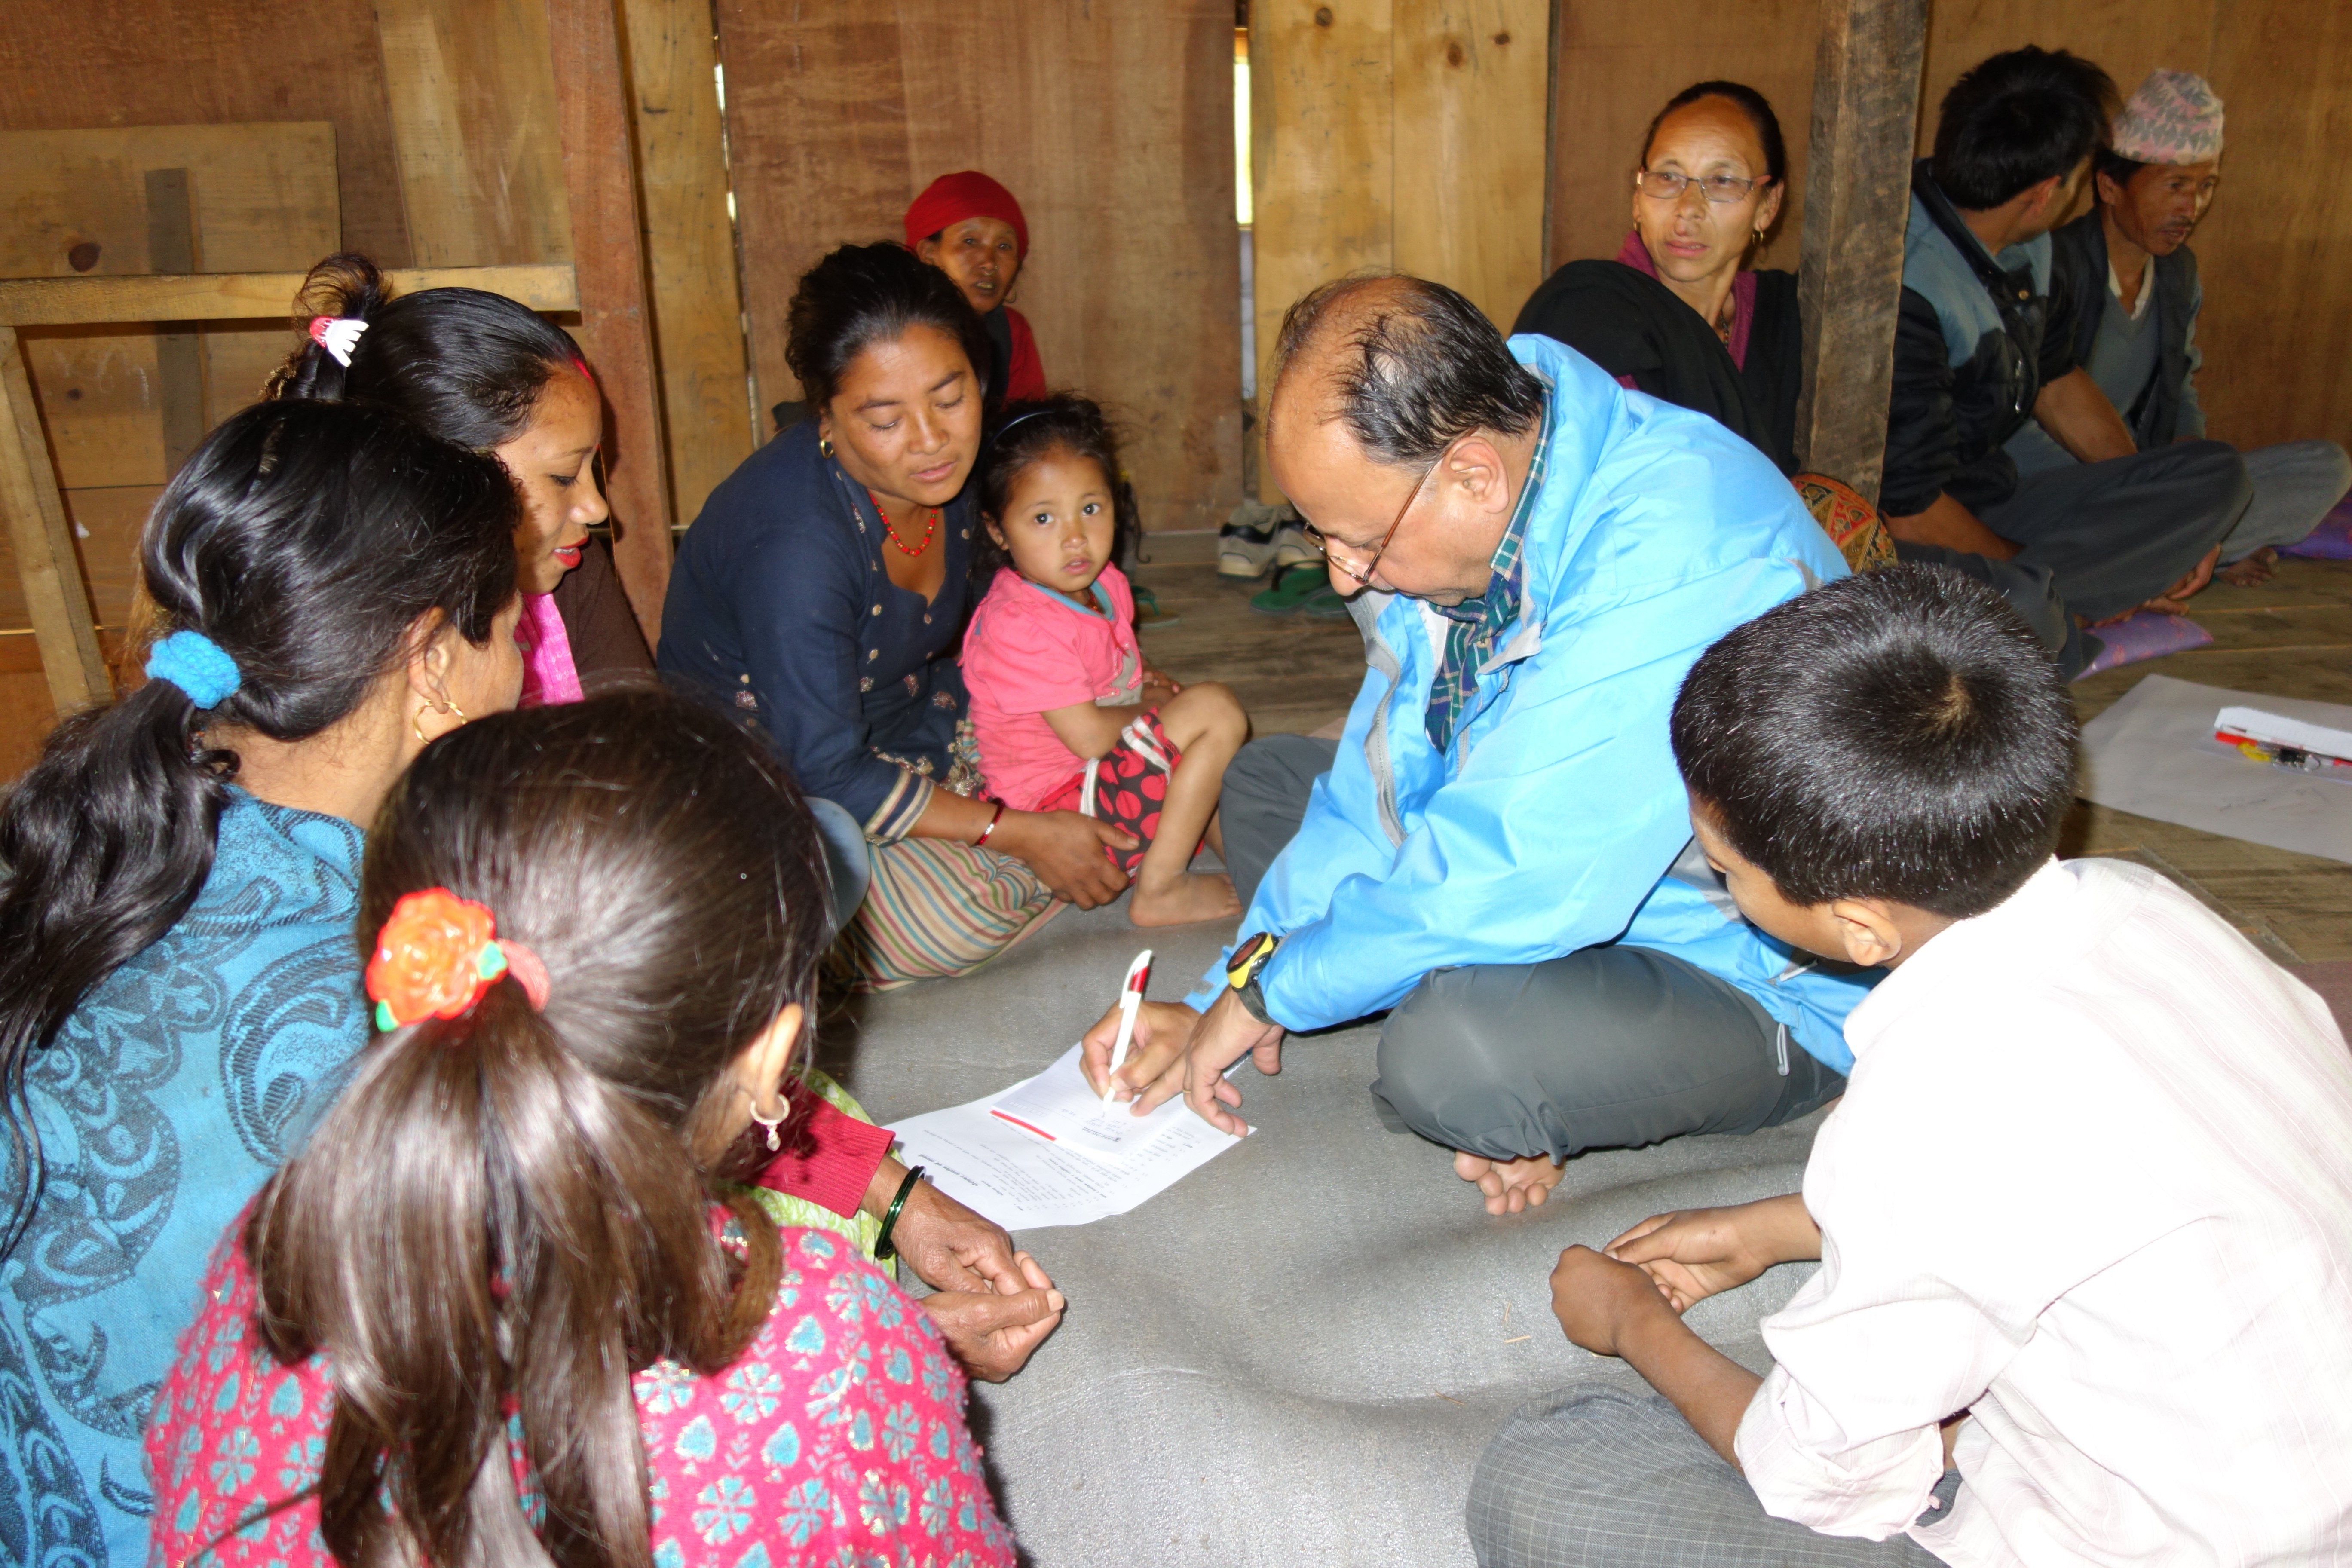 We conducted a set of semi-structured interviews in order to assess land management practices and the impact of new management policies since the Gaurishankar Conservation Area was set up in 2010 (by Dr. Viktor Bruckman)